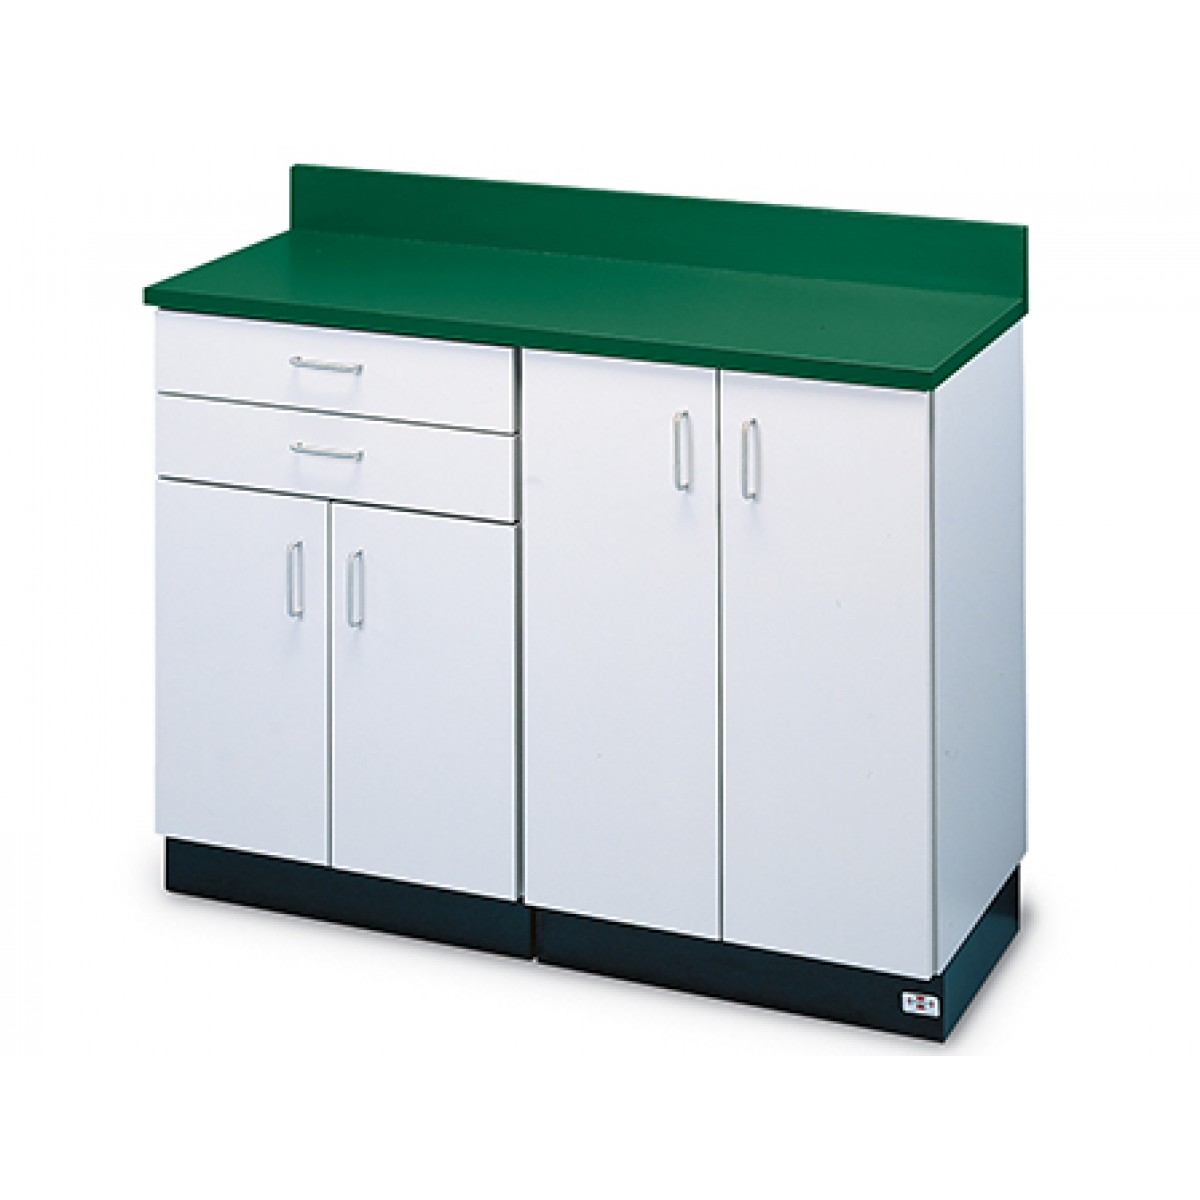 Hausmann B-401 48 Inch Cabinet W/ Four Doors And Two Drawers